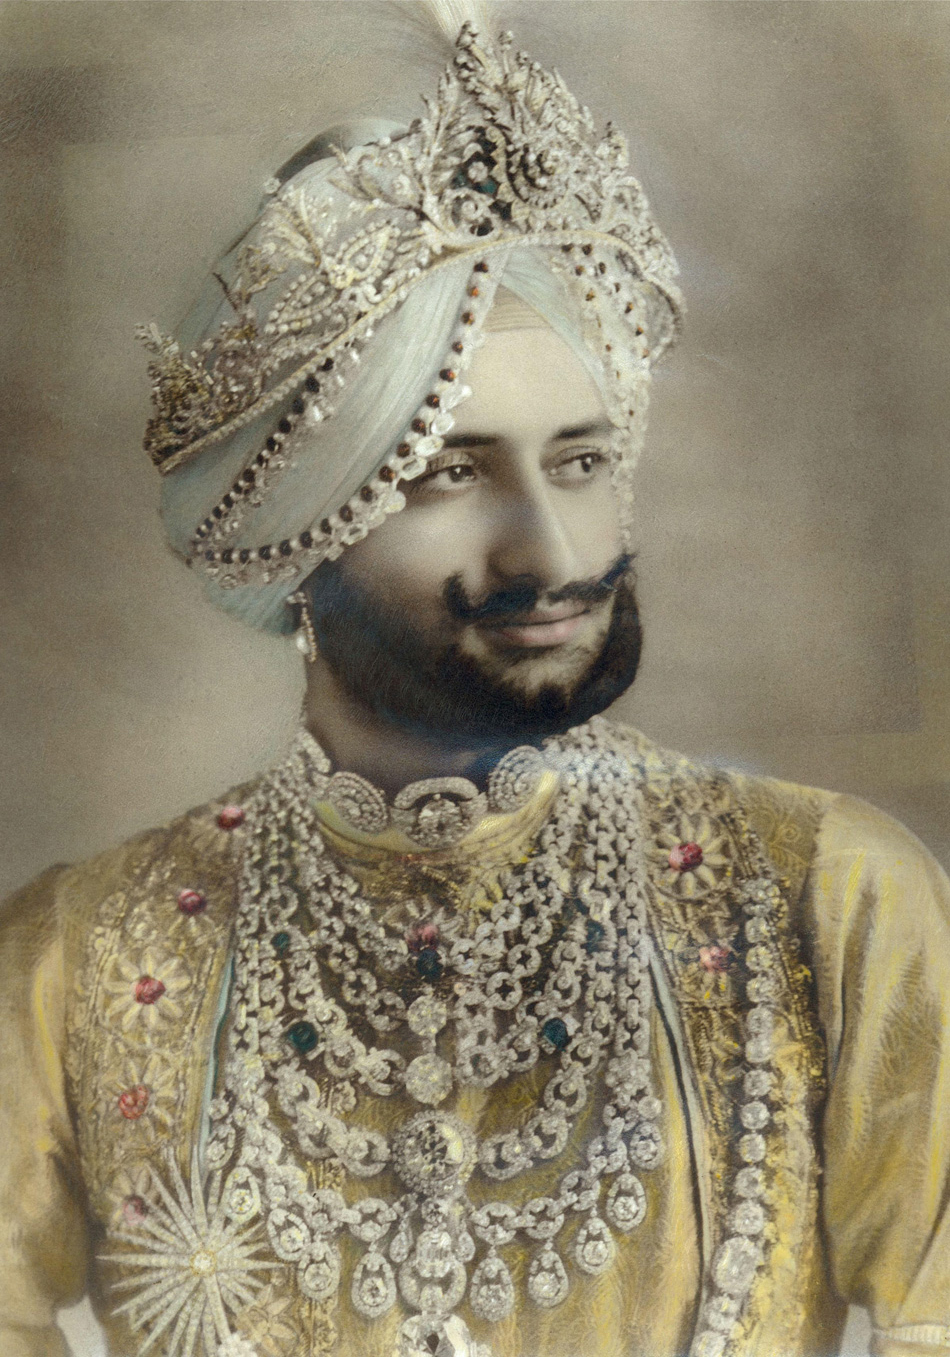 The Maharajah of Patiala In this 1928 photograph from the New York Herald, Sir Yadavindra Singh, Maharaja of Patiala, wears a platinum-and-diamond ceremonial necklace created by Cartier for his father, Sir Bhupindar Singh. © Cartier Archives